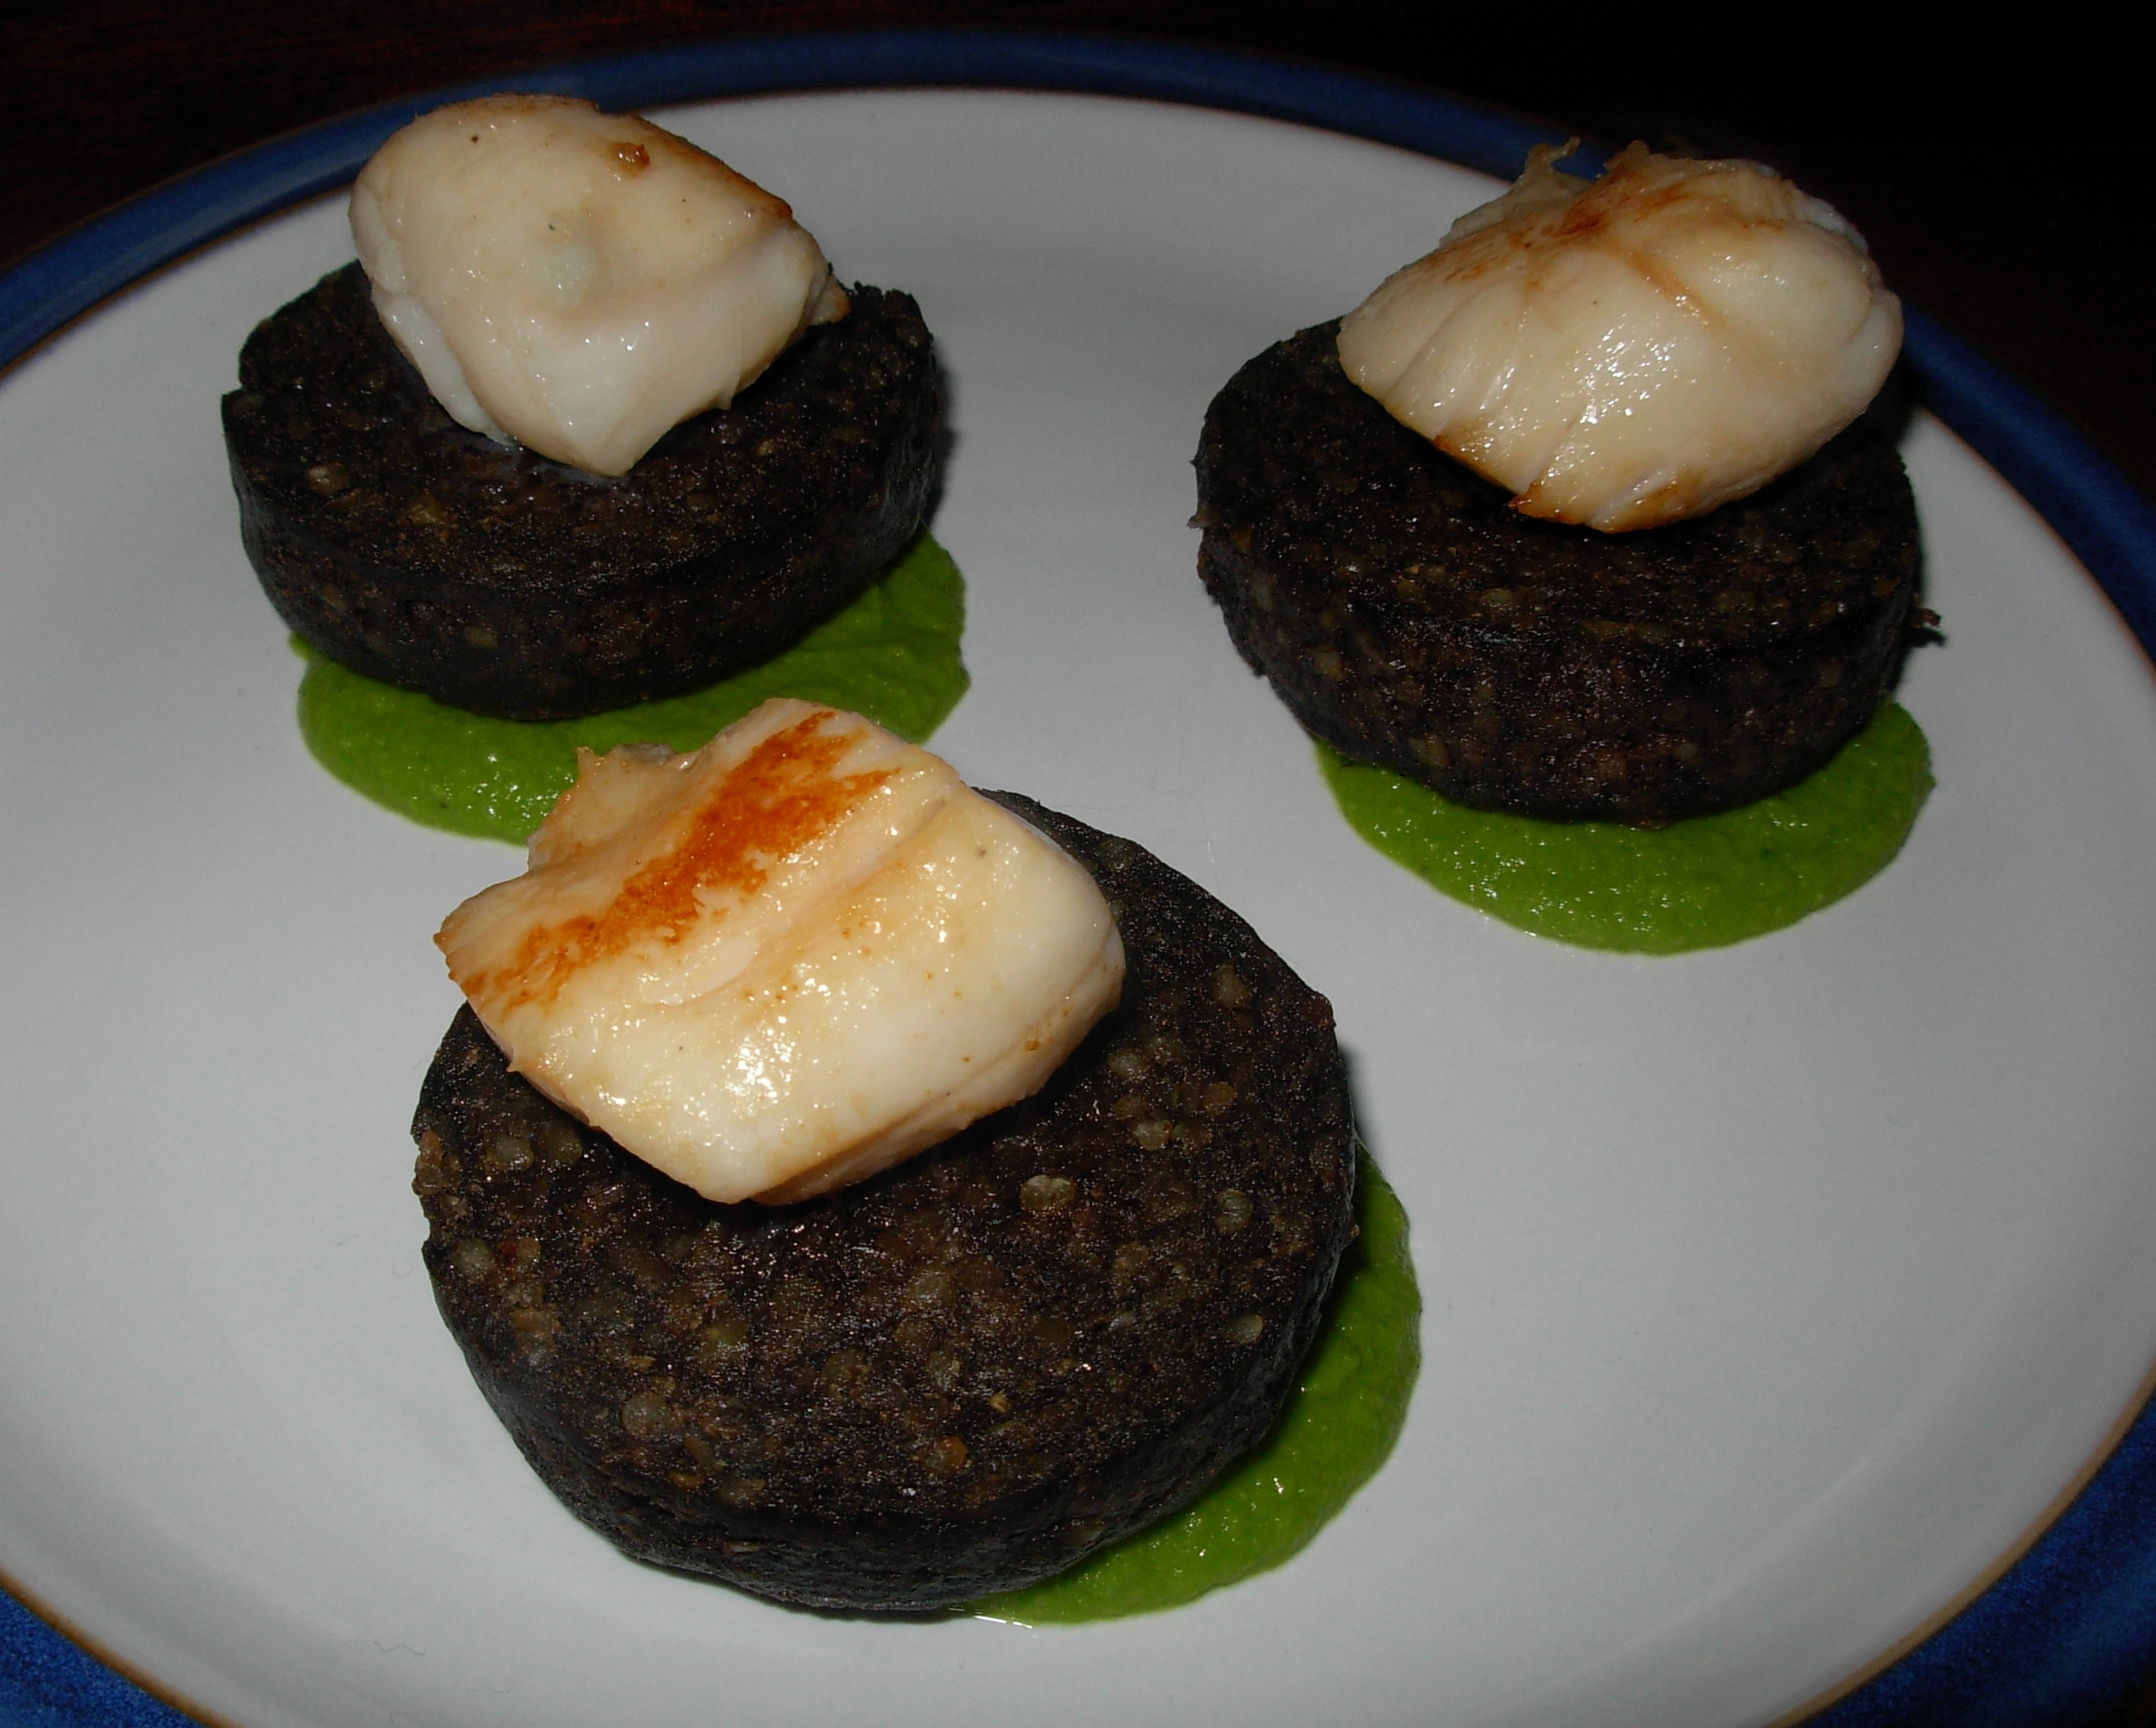 Haggis and scallops on pea purée